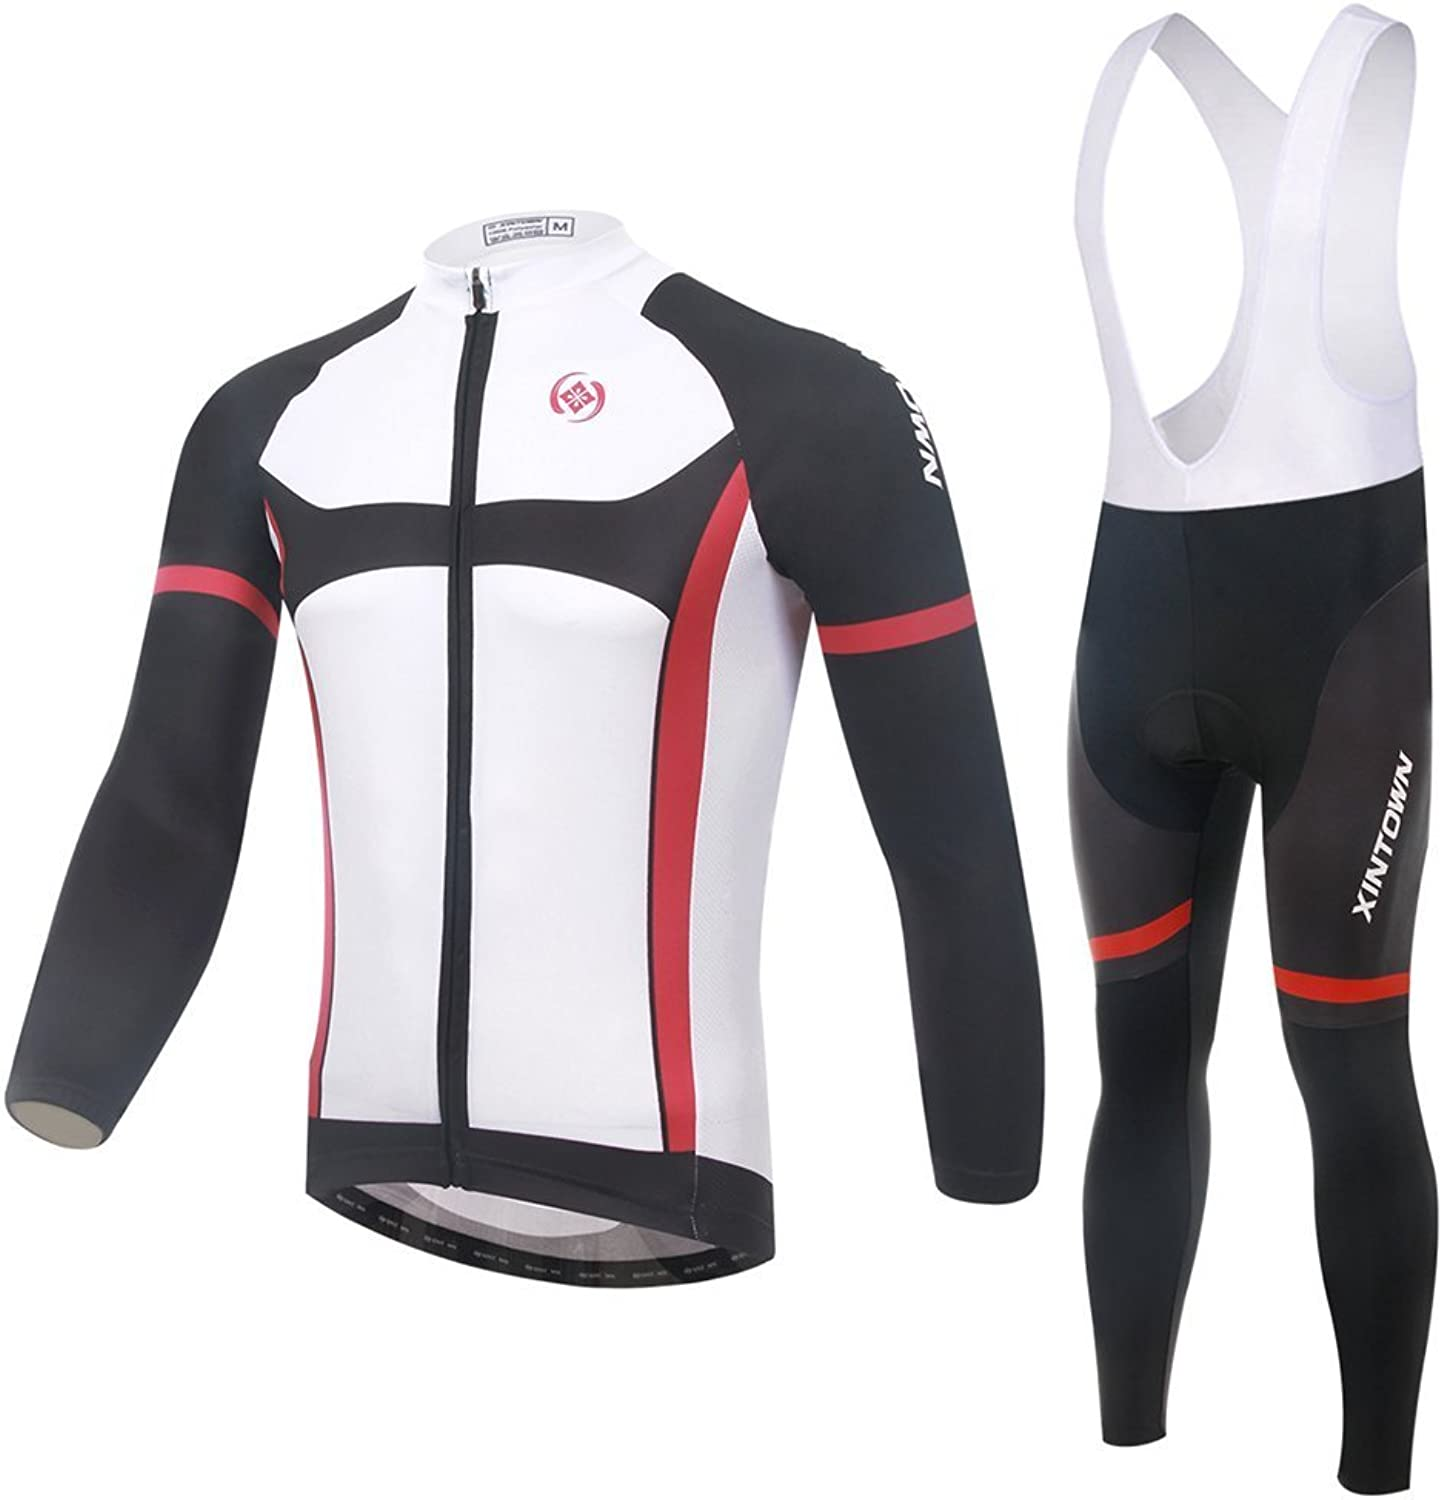 BESYL Unisex Printed HighPerformance Mesh Cycling Clothing Suit, Breathable Long Sleeve Cycling Jersey and Bib Padded Pants Kit for Bicycle Bike Riding Biker (White Red Black)